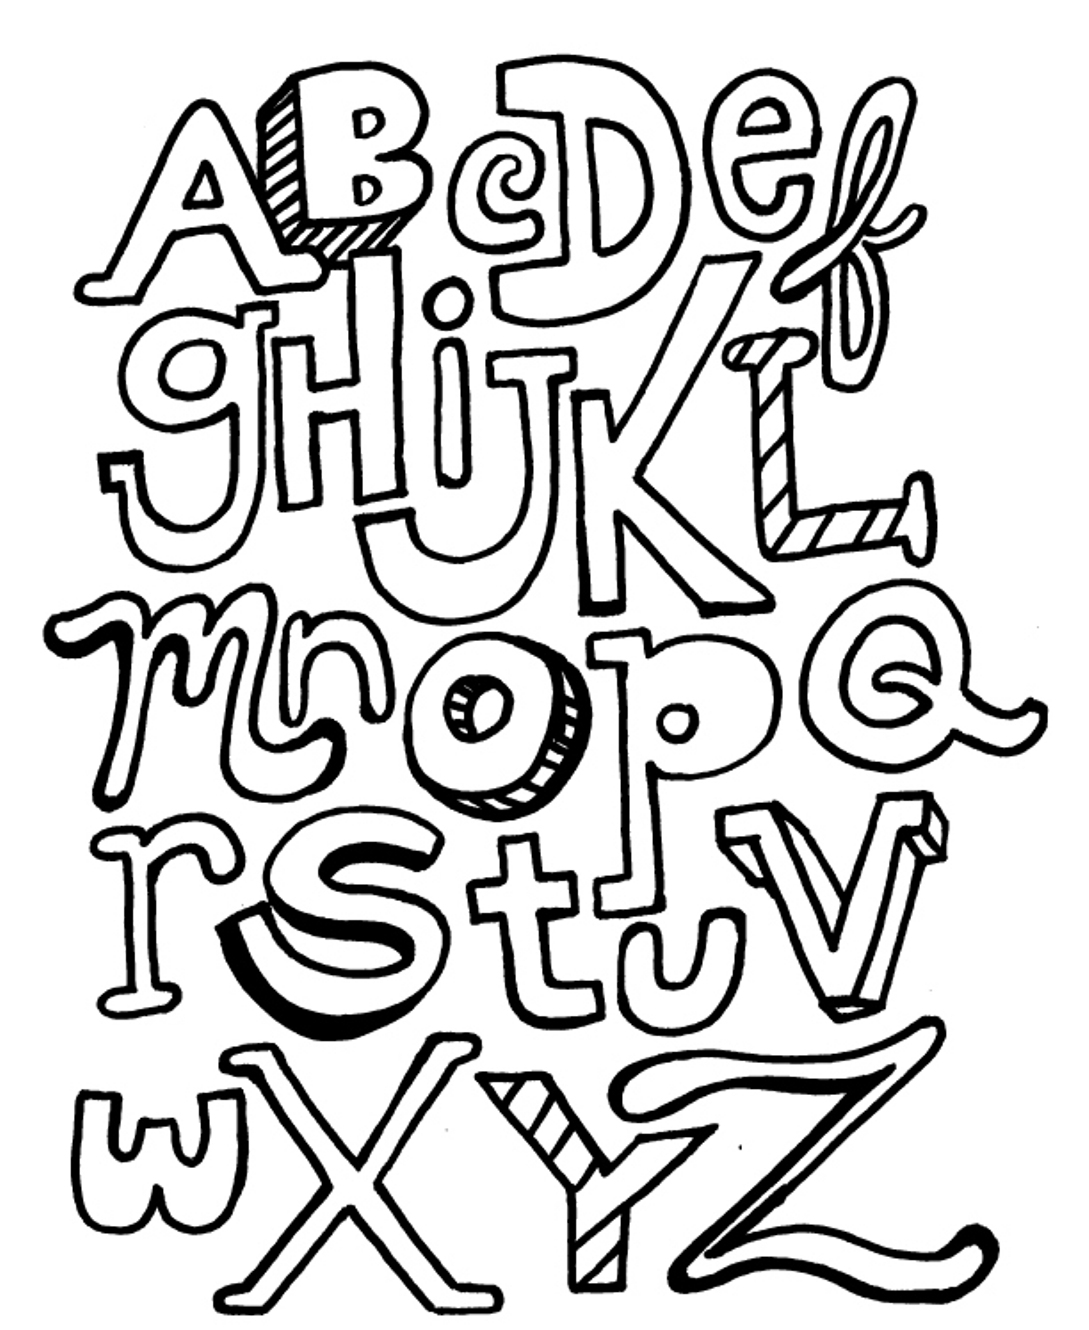 toddler abc coloring pages free printable abc coloring pages for kids coloring abc toddler pages